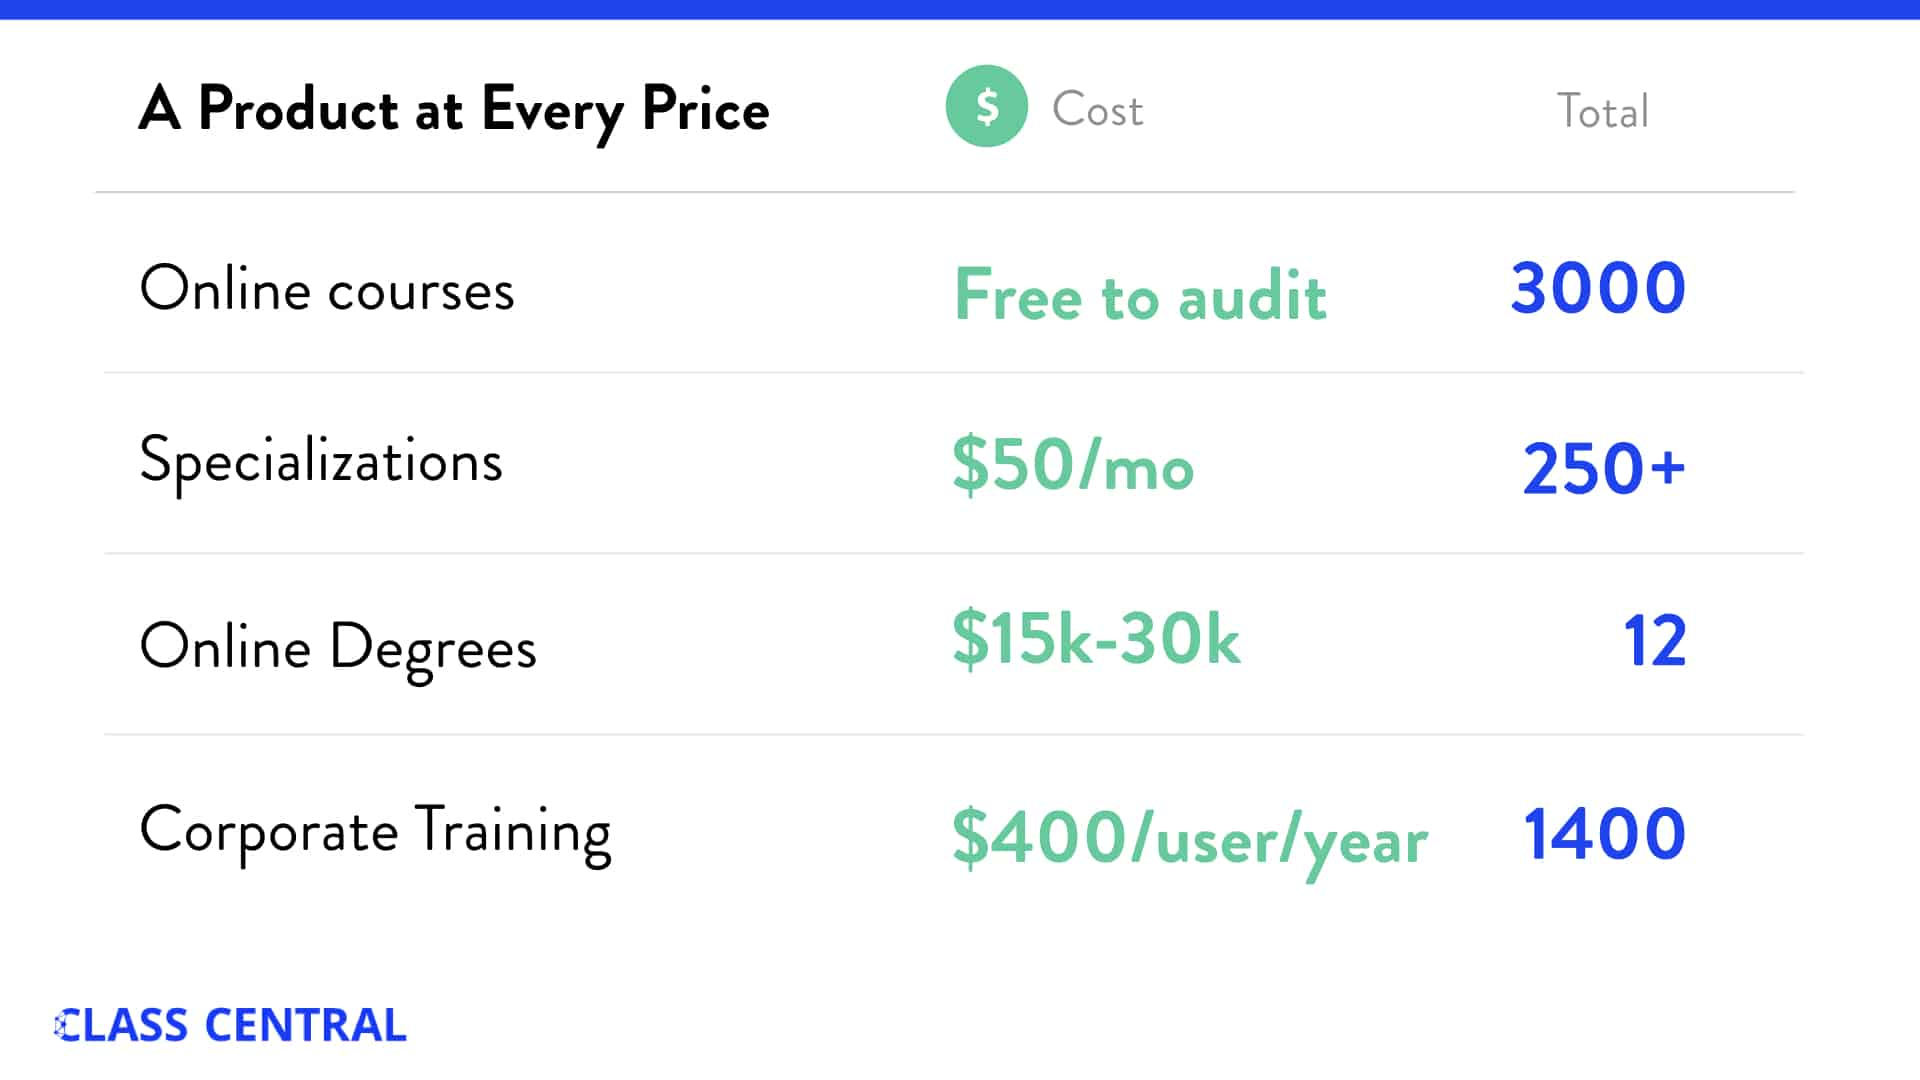 Coursera Professional costs